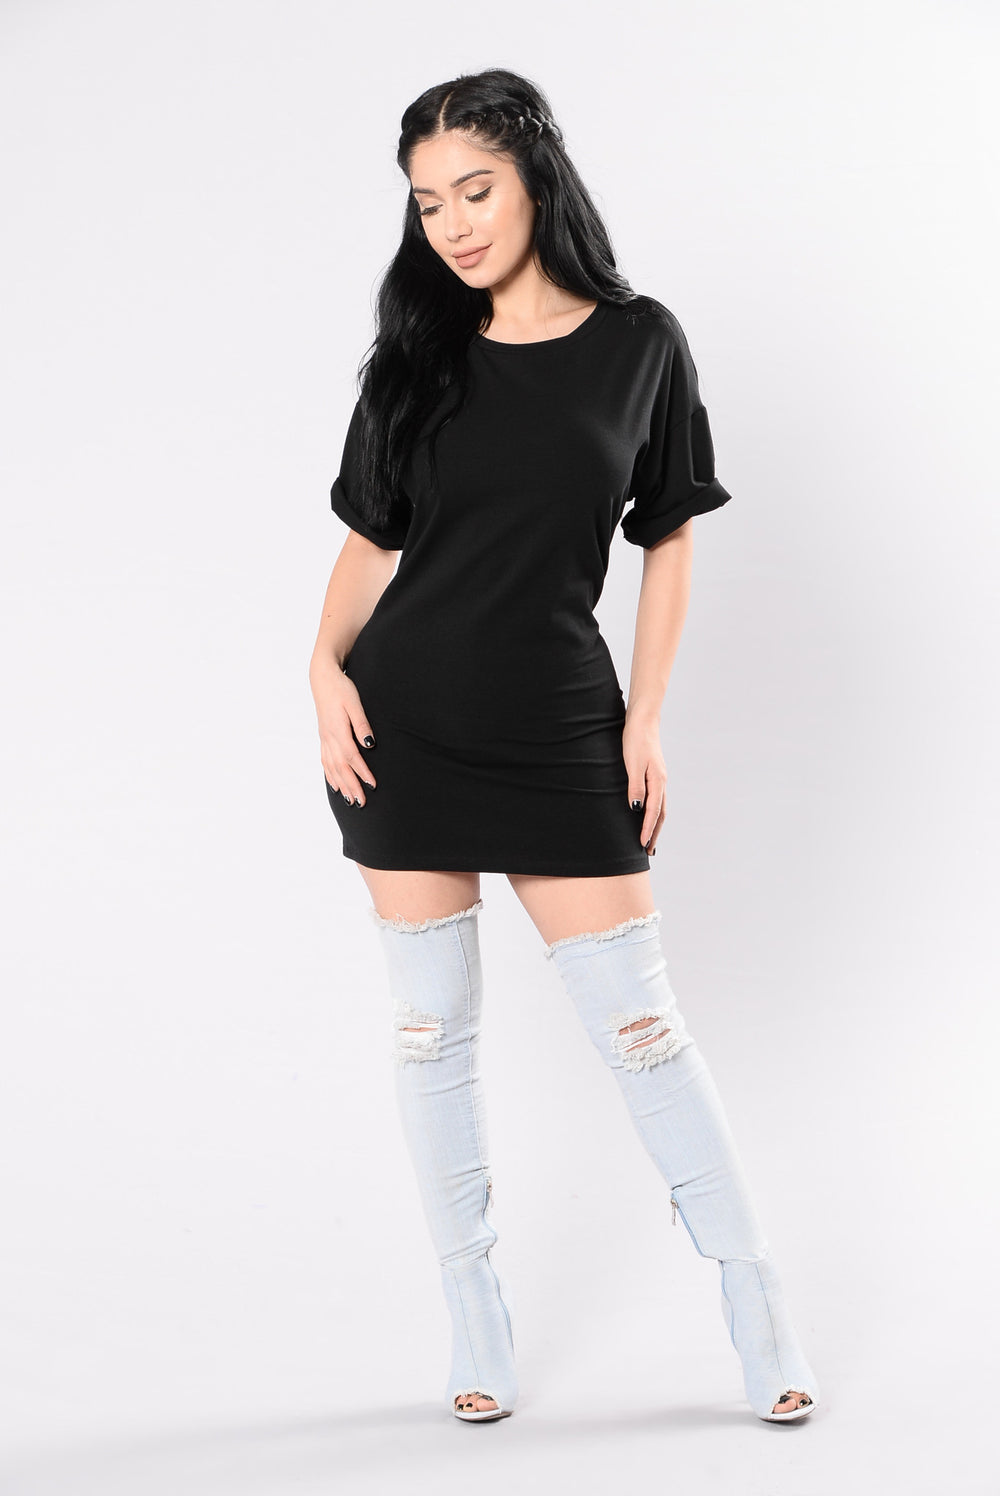 Misunderstood Tunic - Black